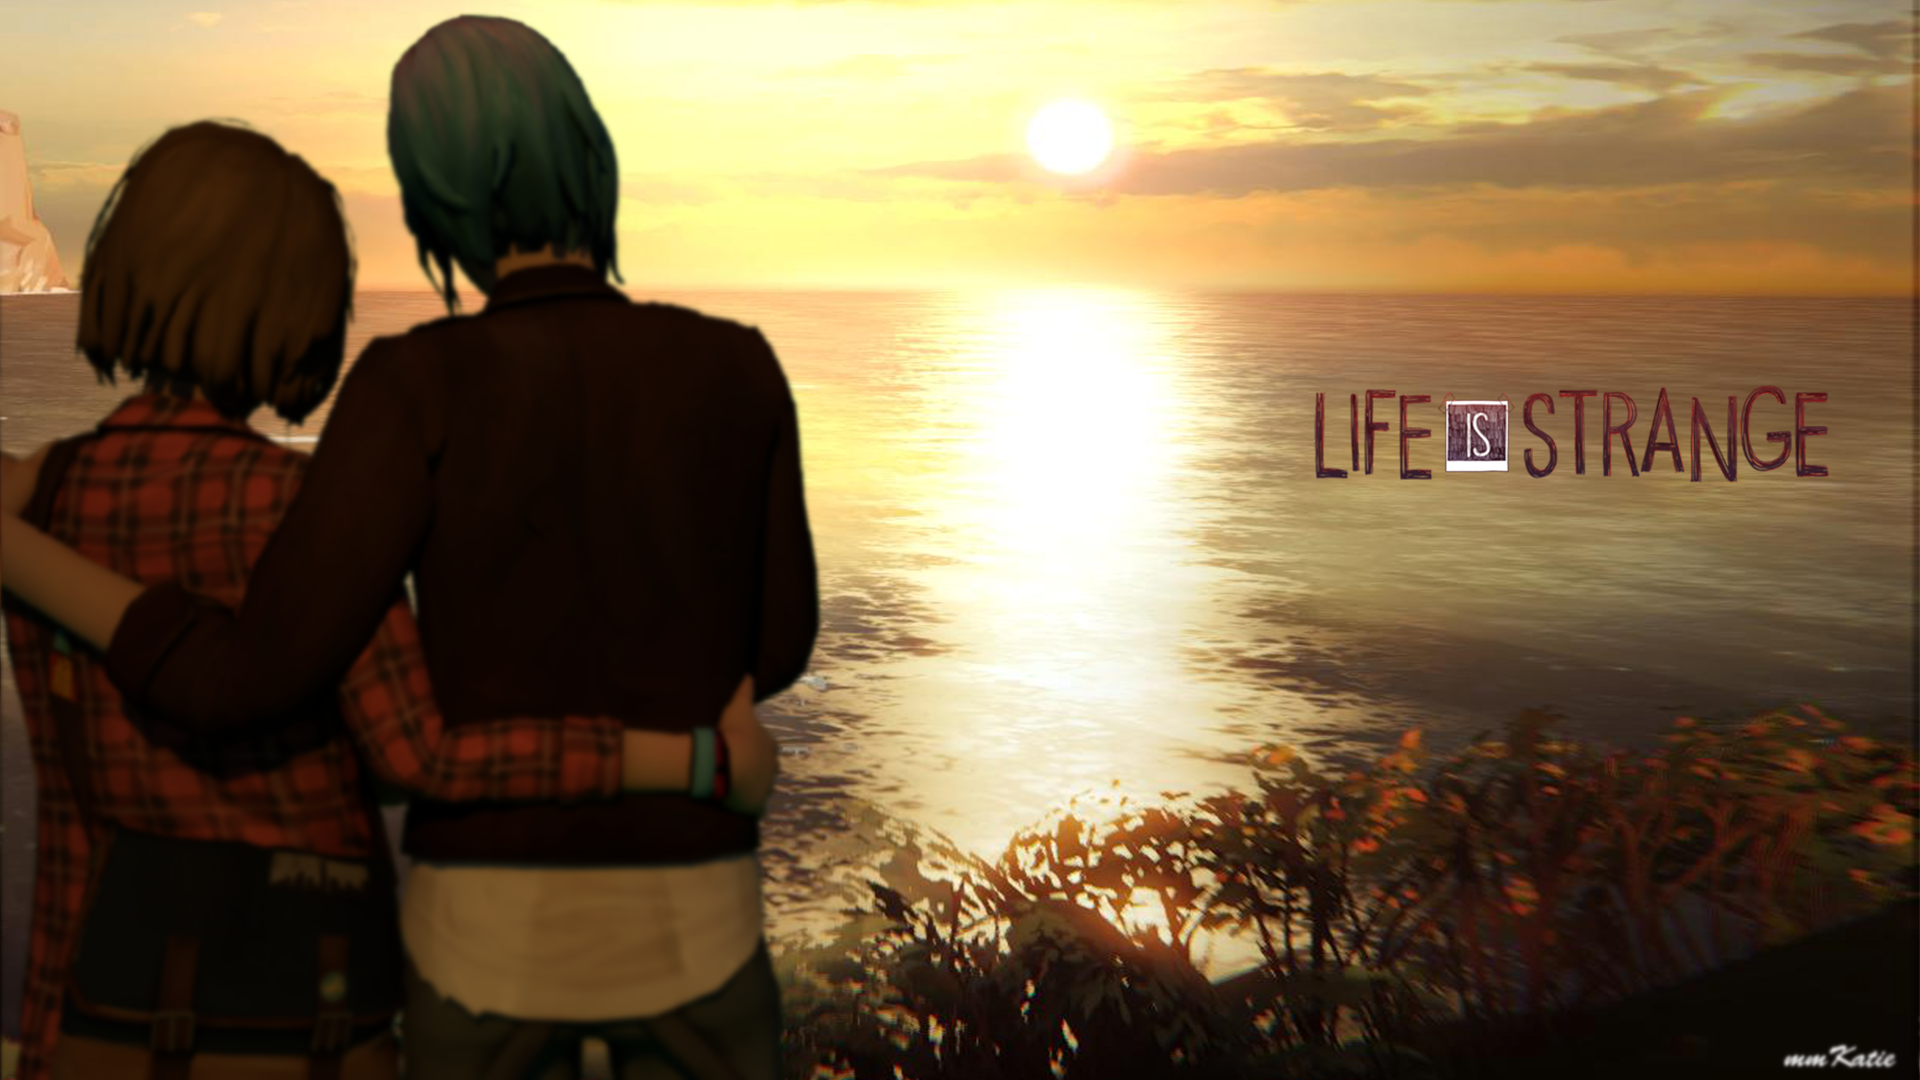 Free Download Chloe And Max Life Is Strange By Mmkatie 1920x1080